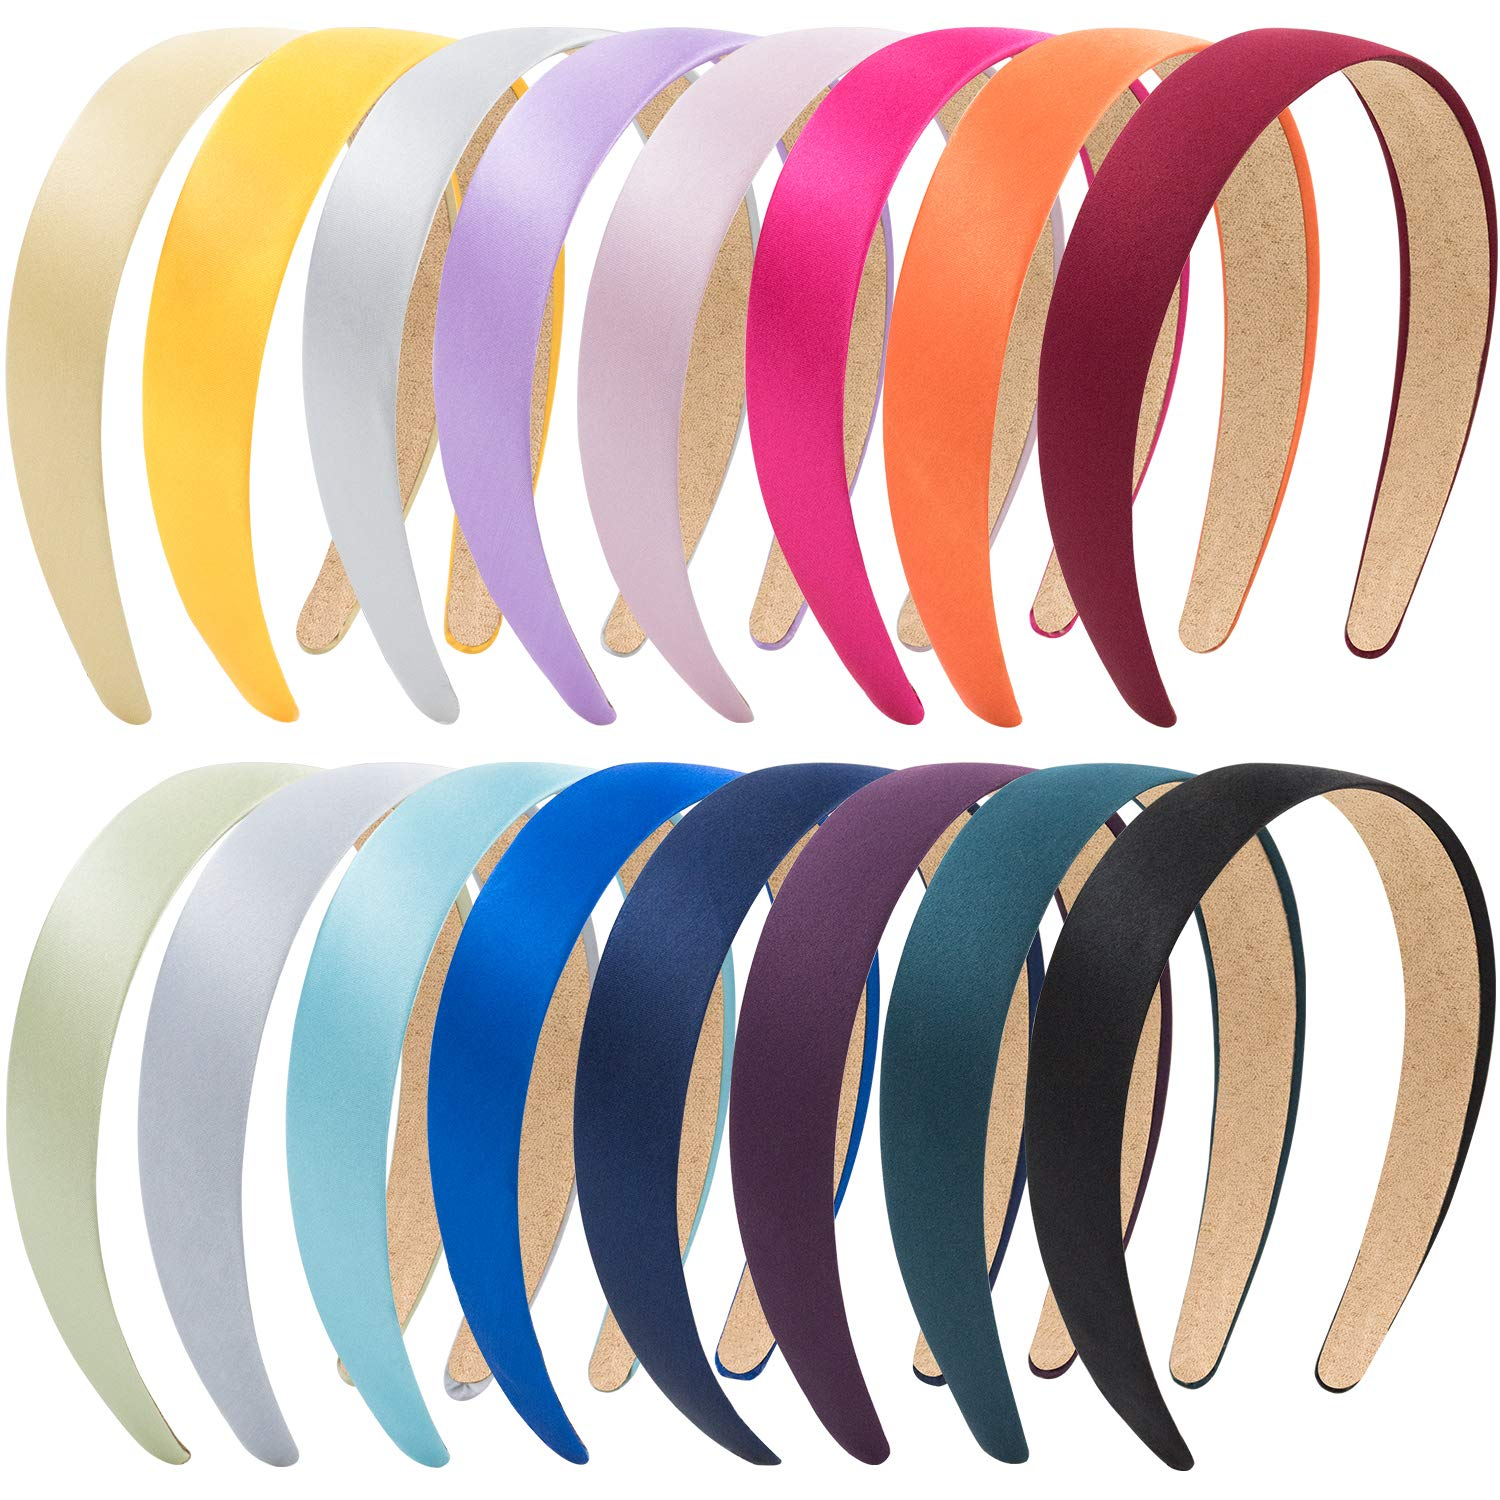 EAONE 16 Pieces Satin Headband Hard Headbands Wide Anti-slip Ribbon Hair Bands for Women Girls with 1 pouch bag, 1.2 Inch, 16 Colors by EAONE